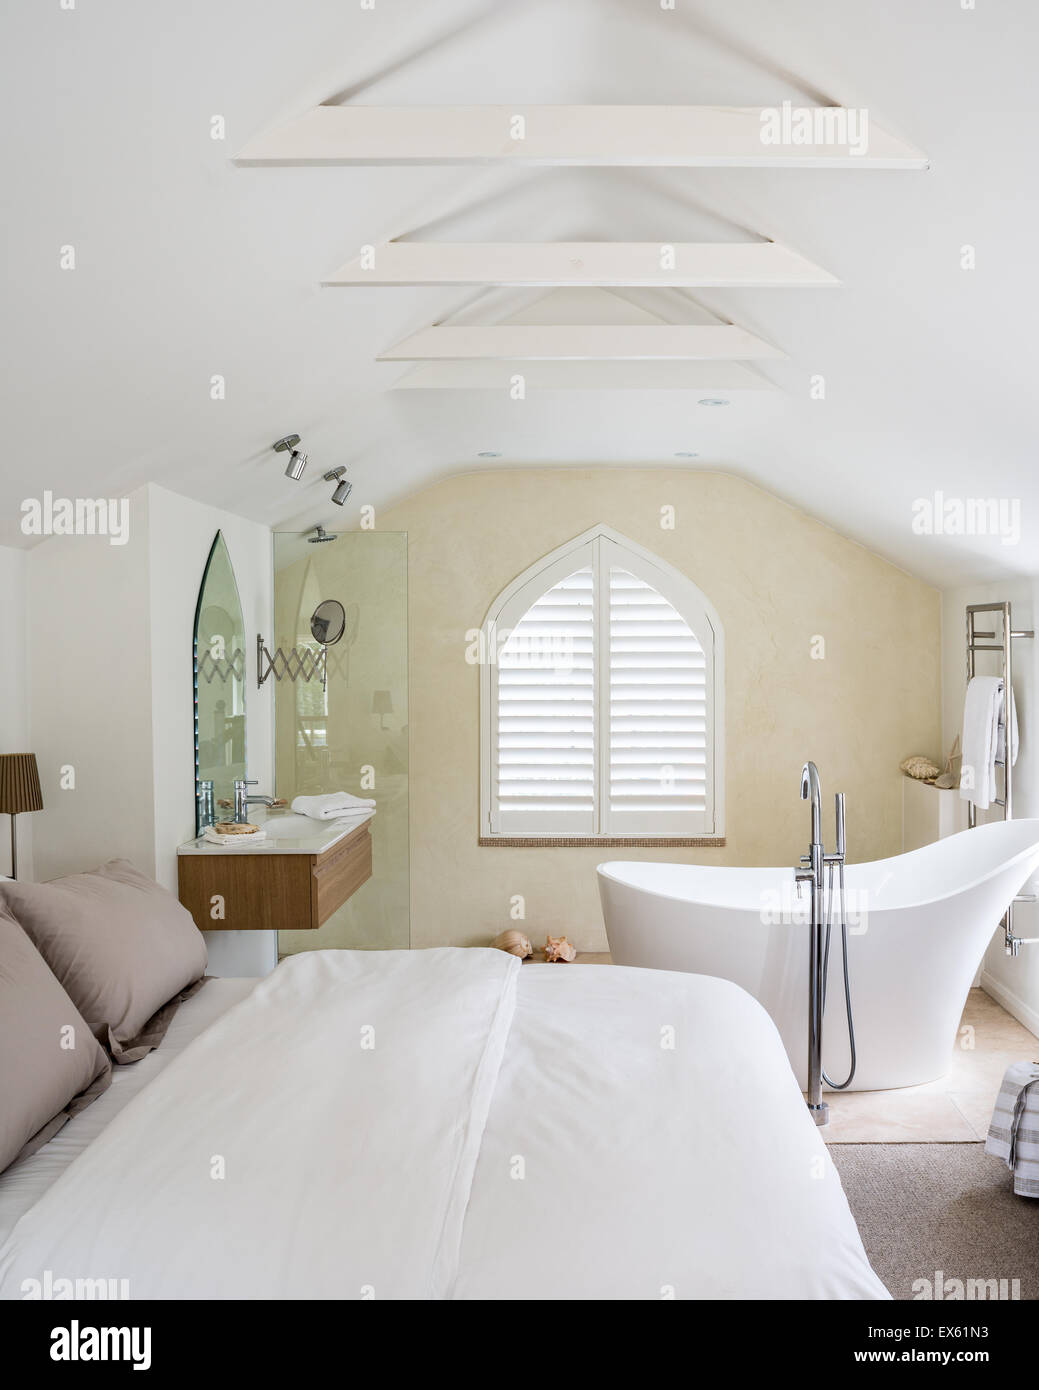 Cottage Style Bedroom Stockfotos & Cottage Style Bedroom Bilder - Alamy